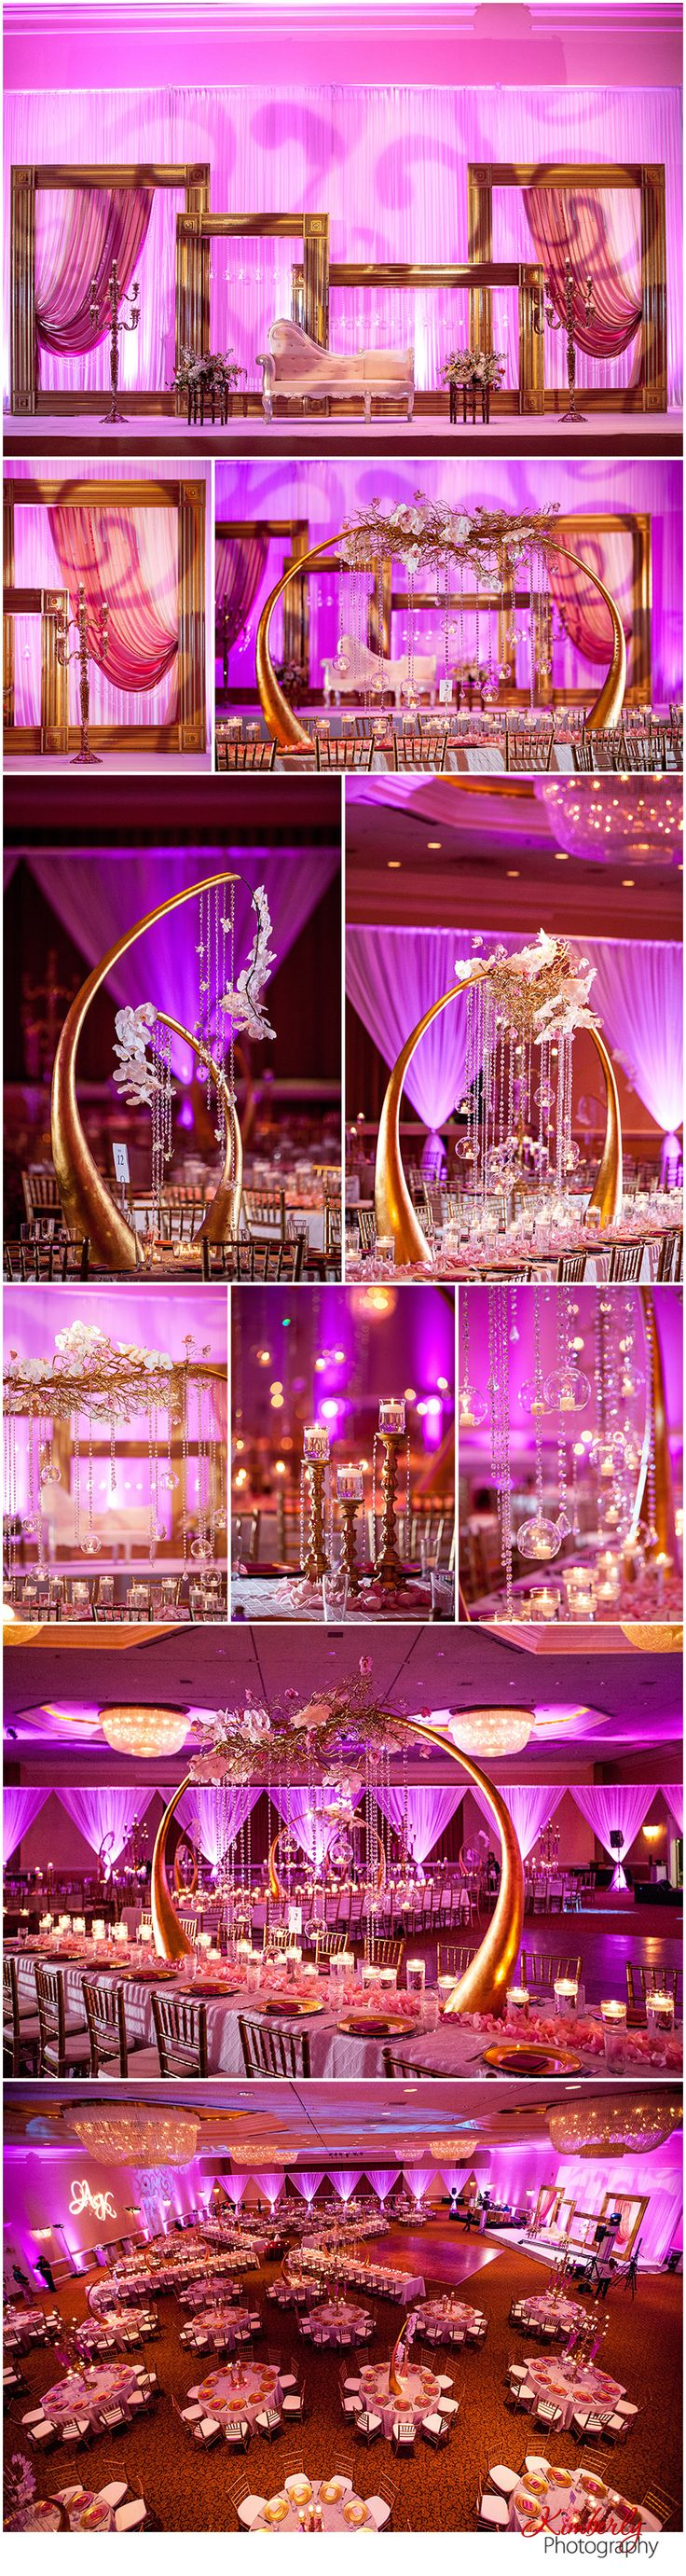 Happy Monday everyone!  We are thrilled to return to our Get Inspired! series with this gorgeous reception creation designed by Suhaag Garden.  Talk about romance!  These center pieces are a true w...